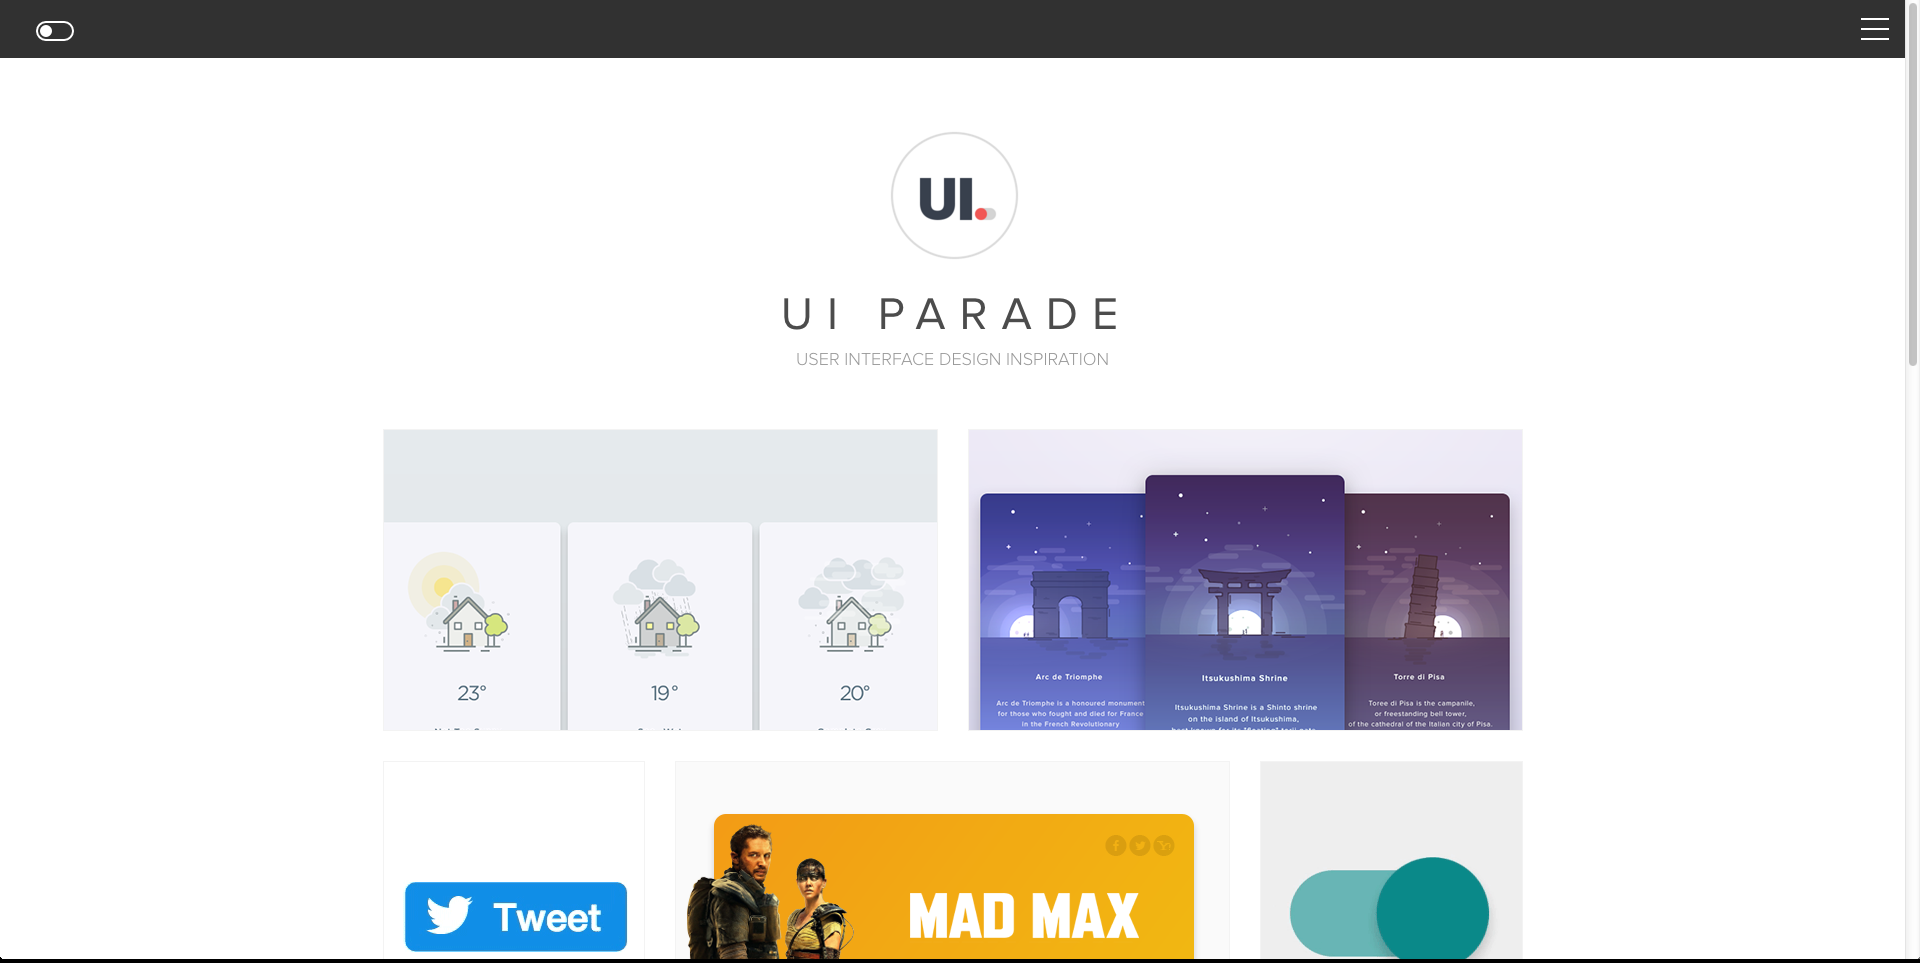 10 useful websites to boost your design career blog kamarupa are you planning on pursuing a career in the ui ux design this might be a good website to start ui parade is an a to z resource for user interface design